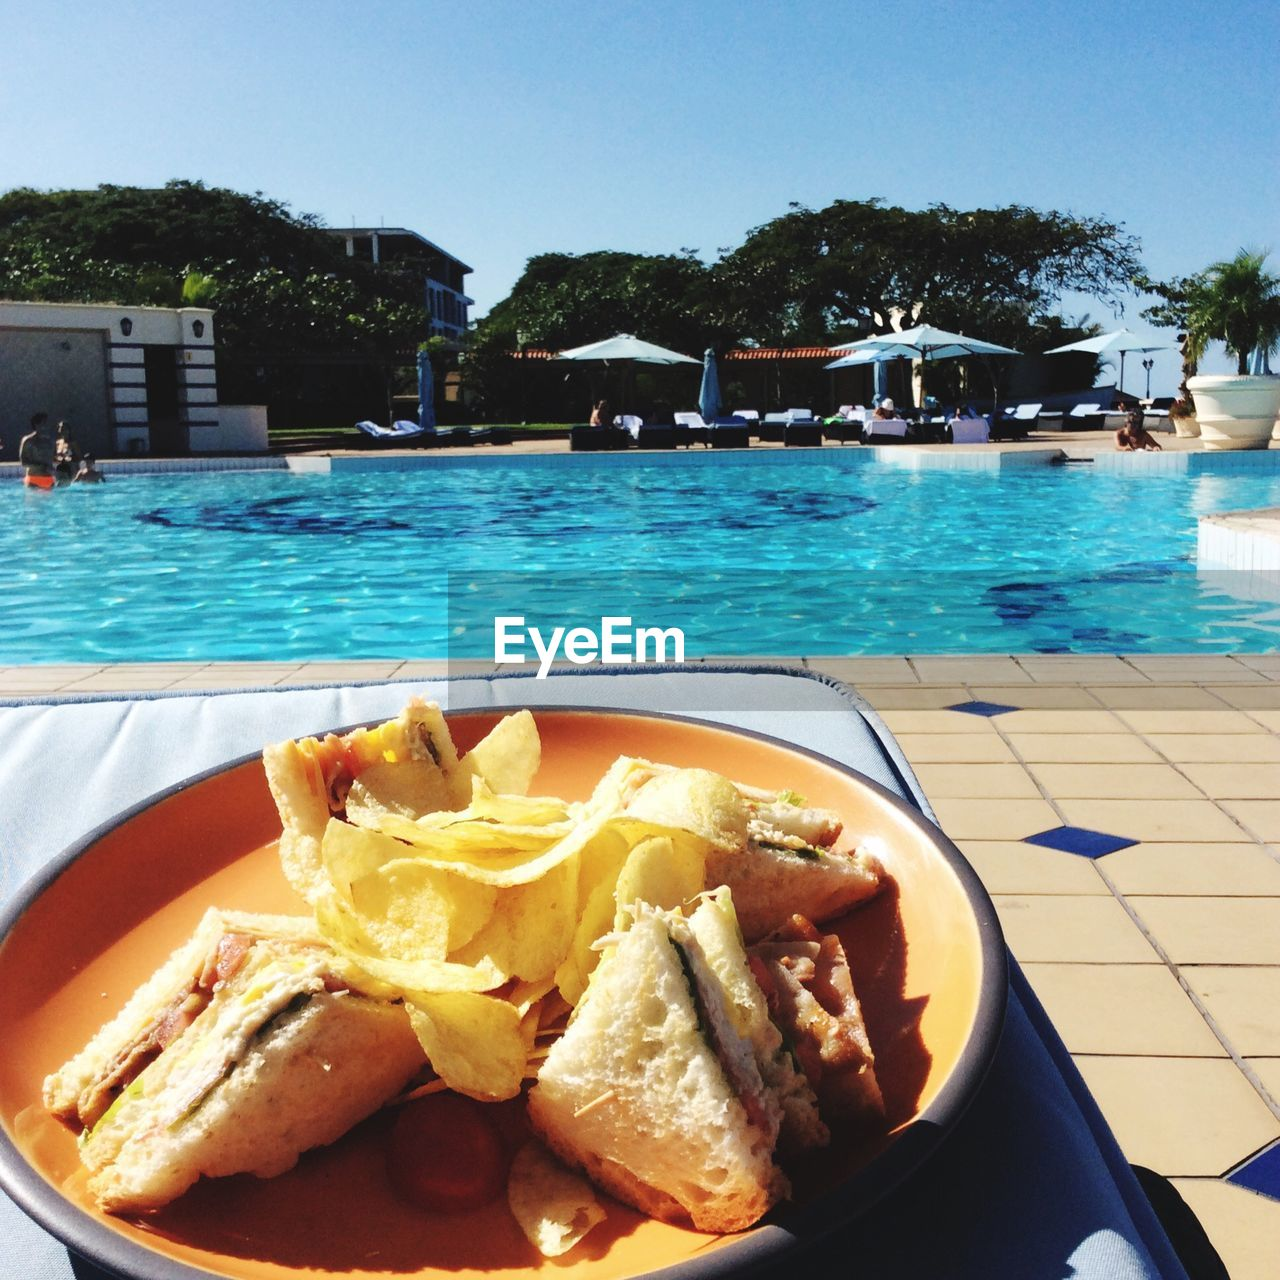 Close-up of sandwich against pool